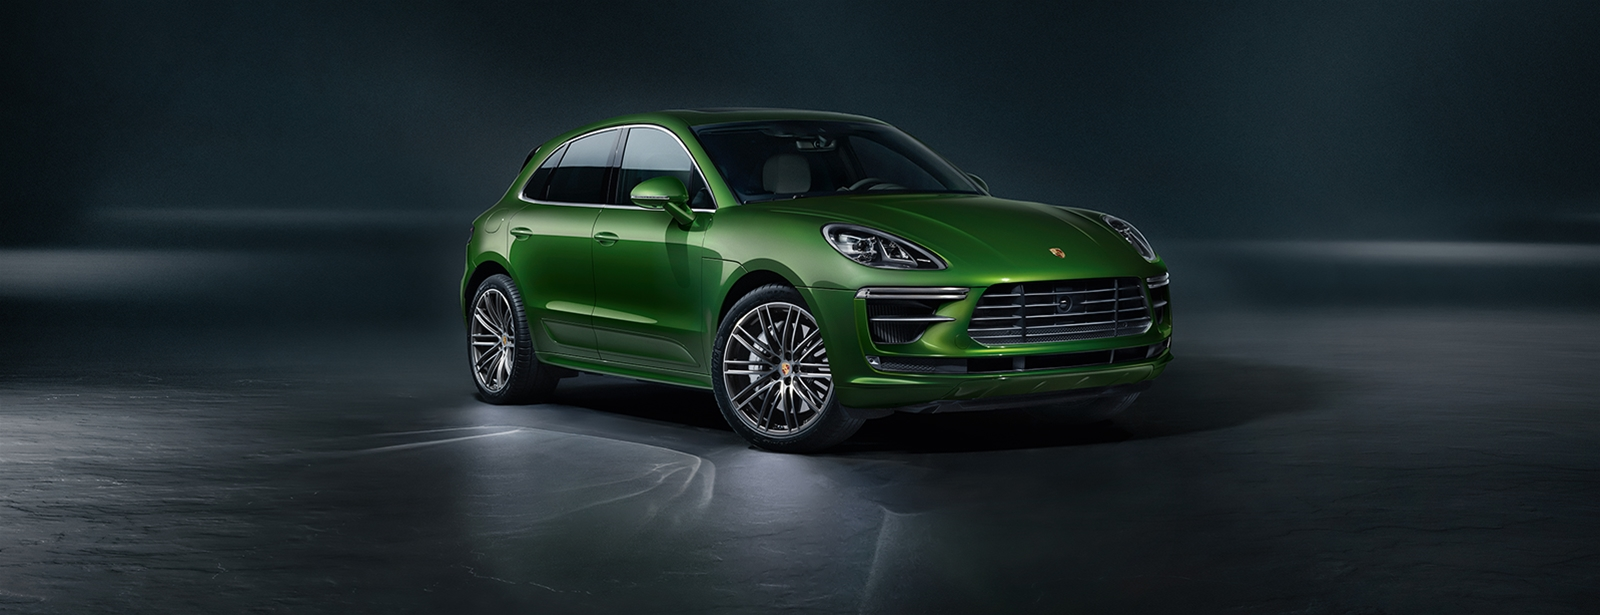 Choose Thrilling. - Macan Turbo: Topmodel krijgt 440 pk.